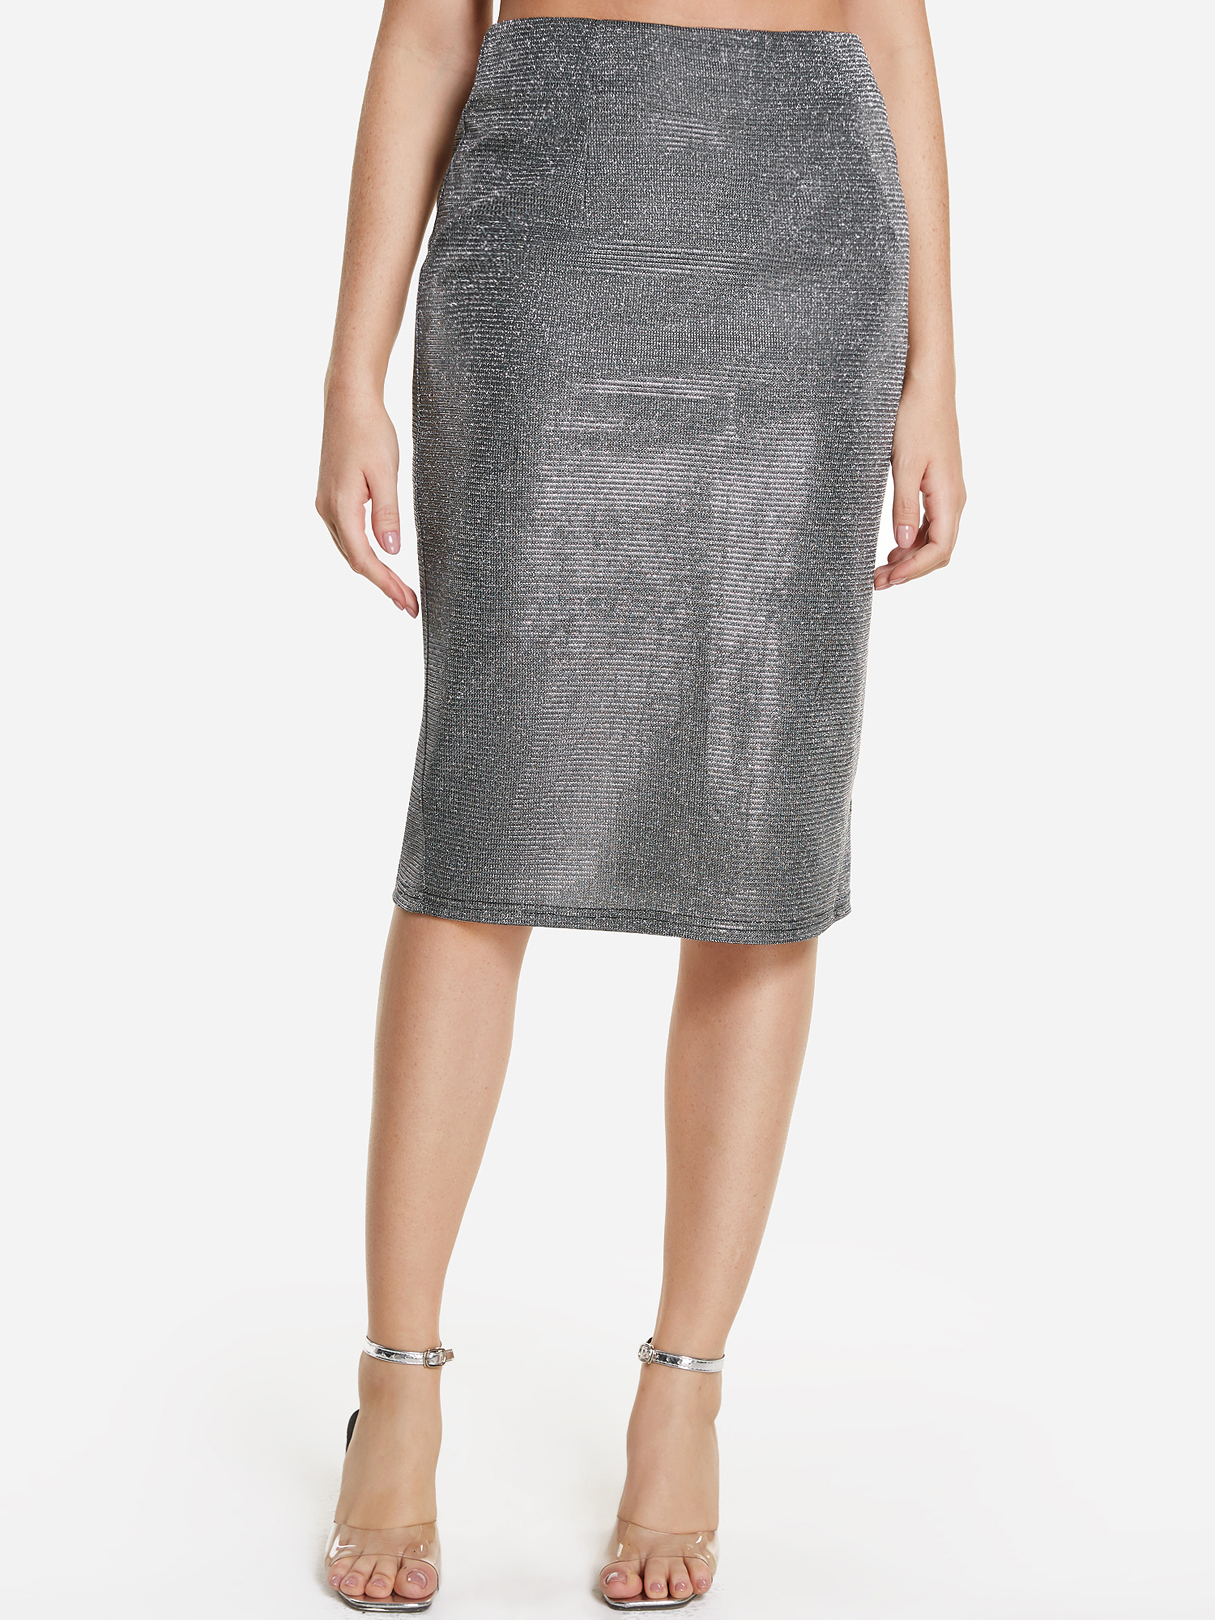 Silver High-waisted Slit Hem Metallic Skirt